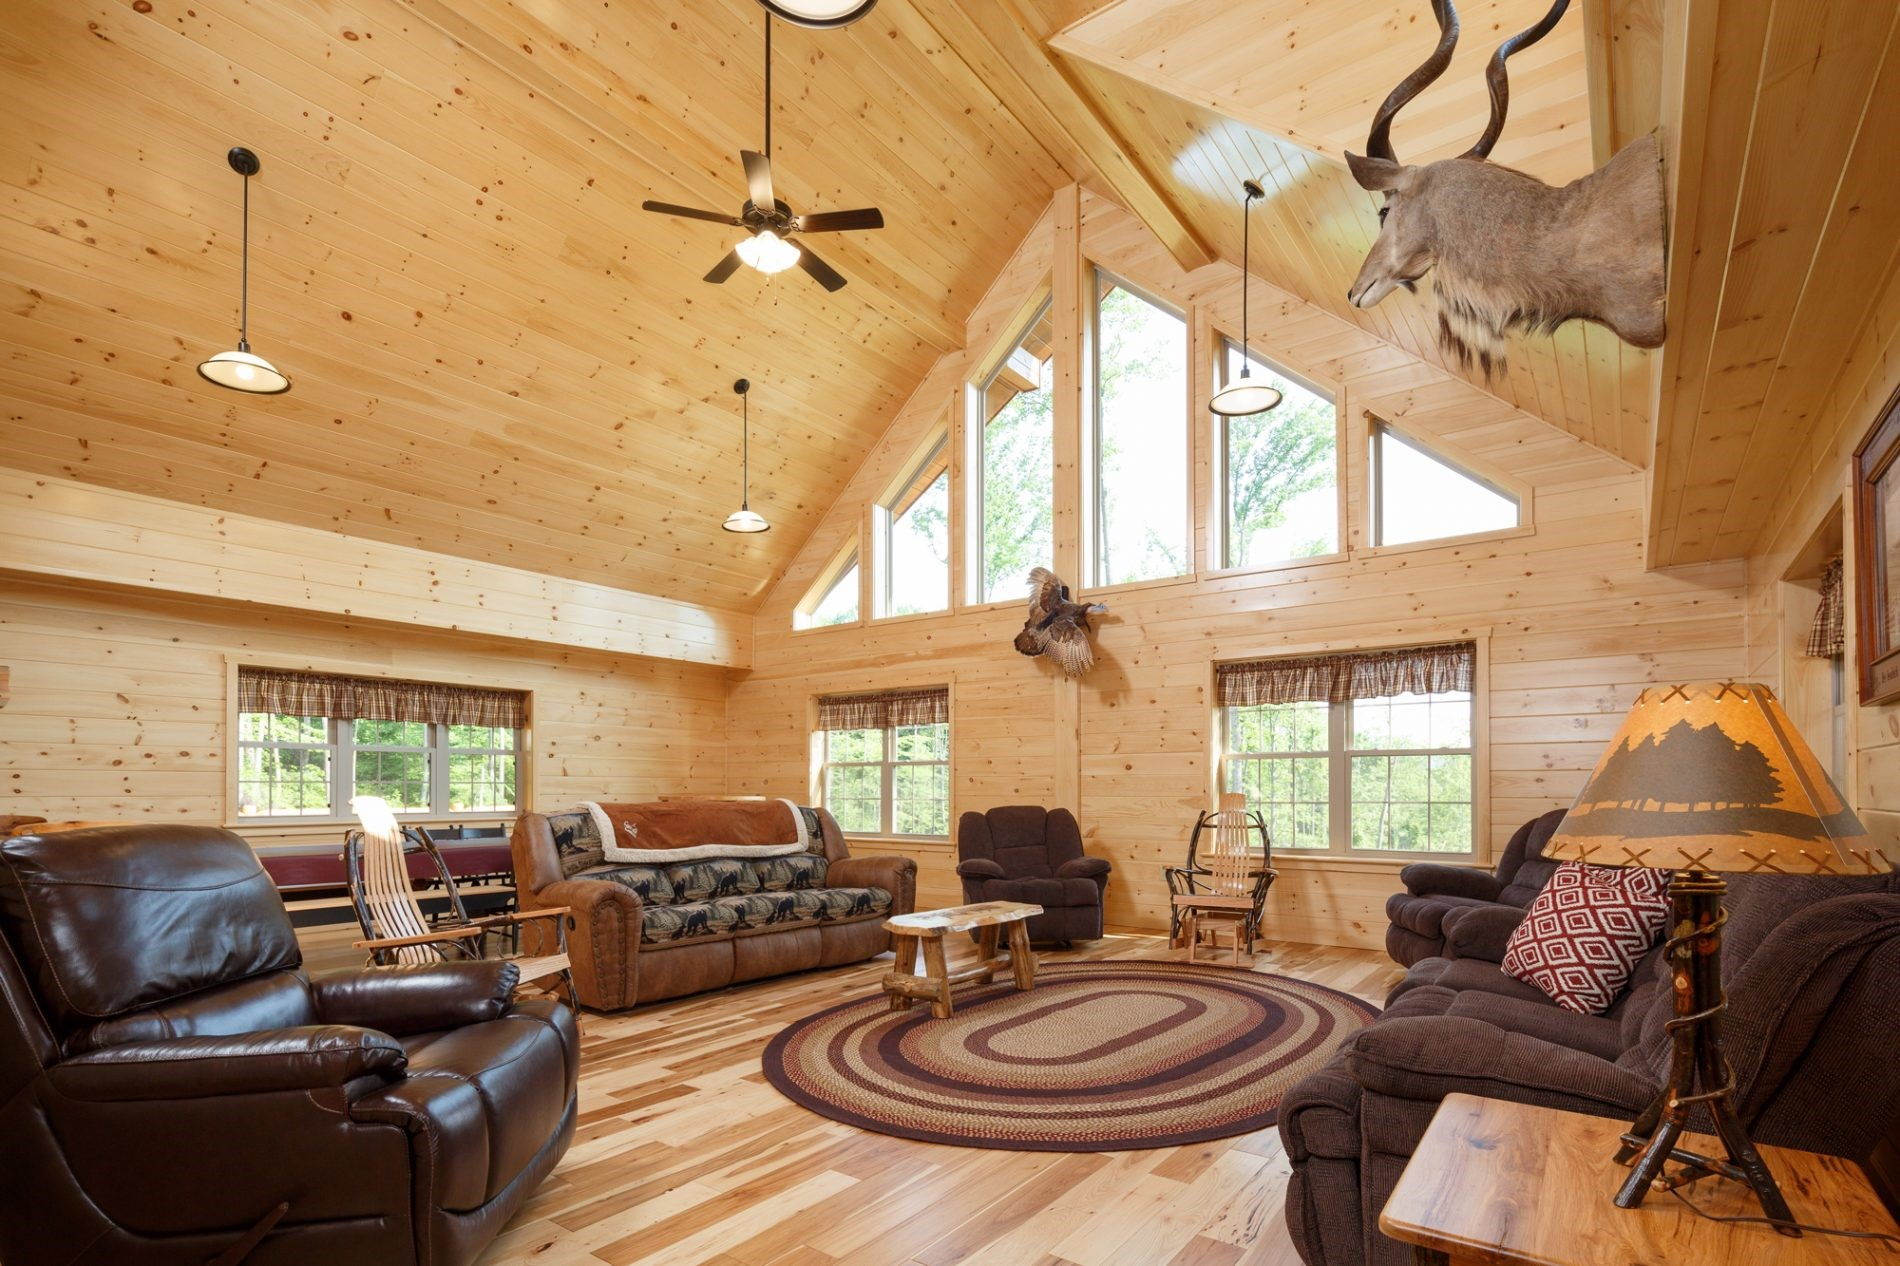 inside of a log cabin home